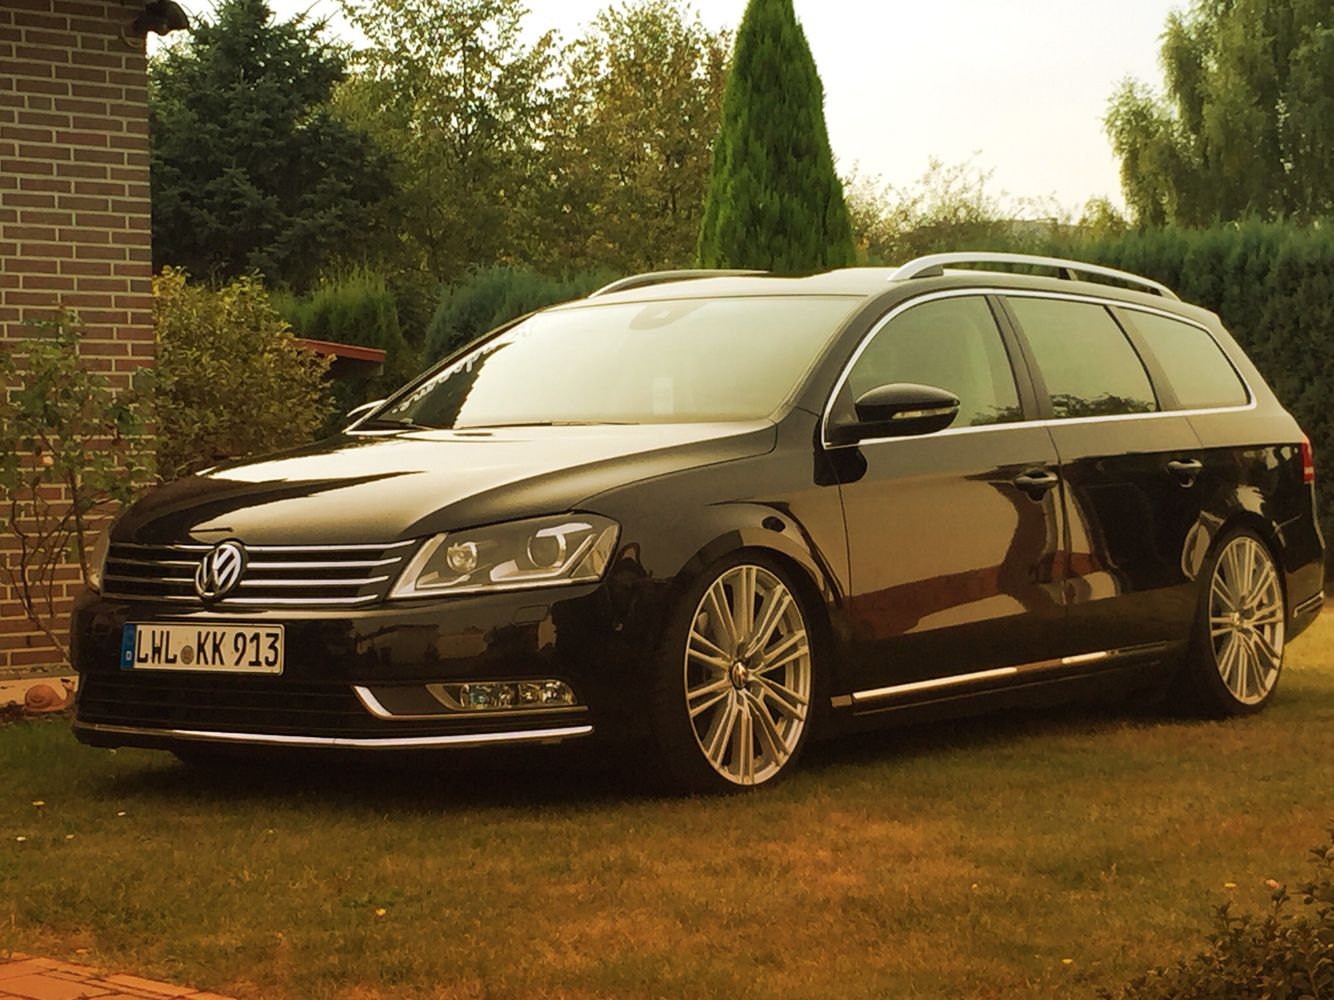 passat b7 on 19 39 inch rims with passat b7 pinterest rebaixados carros. Black Bedroom Furniture Sets. Home Design Ideas